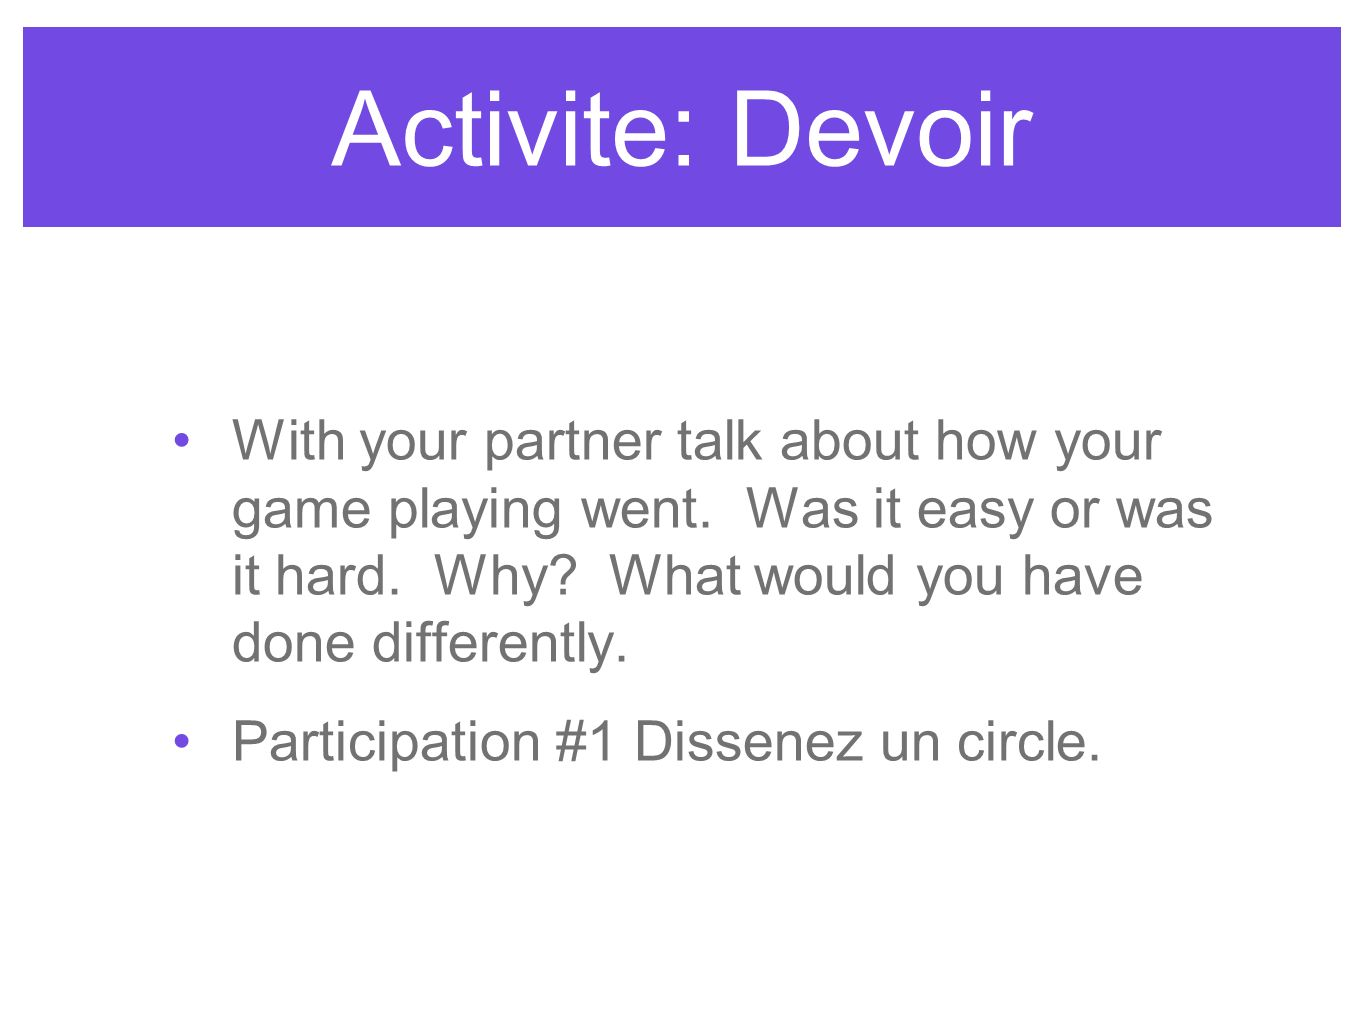 Activite: Devoir With your partner talk about how your game playing went. Was it easy or was it hard. Why? What would you have done differently. Parti